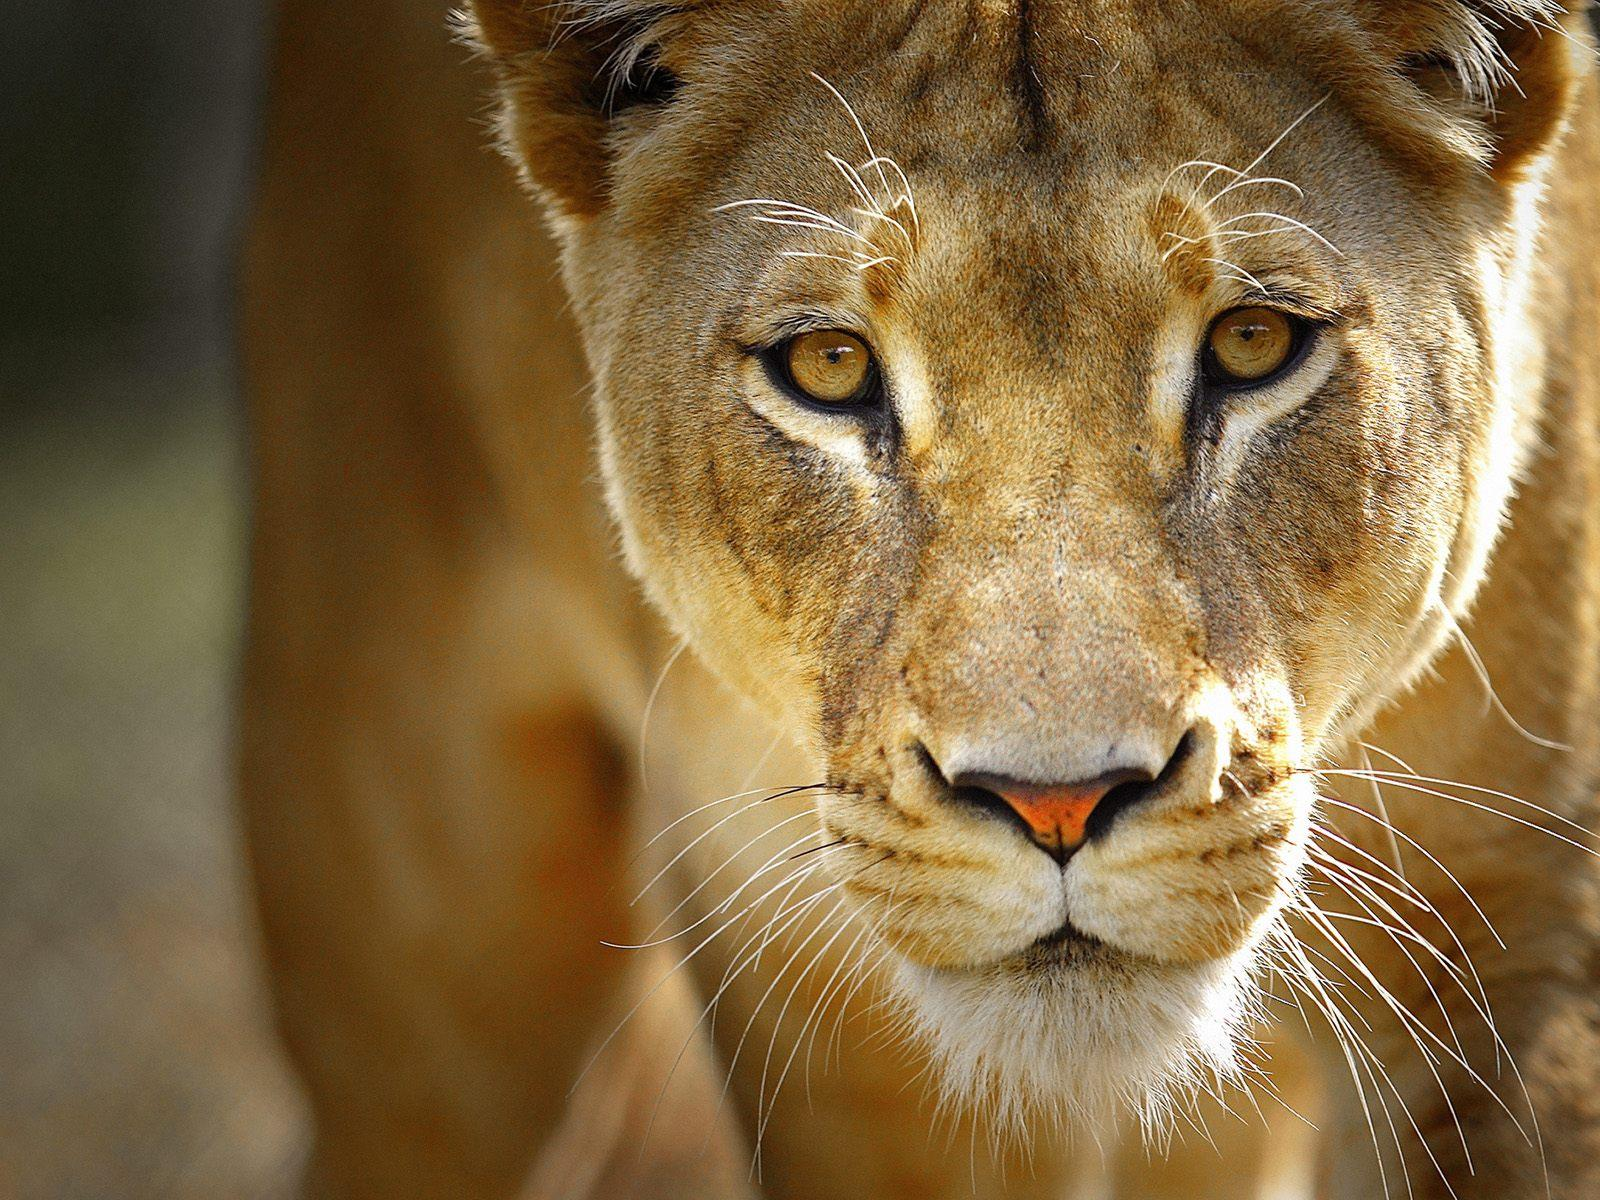 Wallpaper Information: Lioness Backgrounds 14762